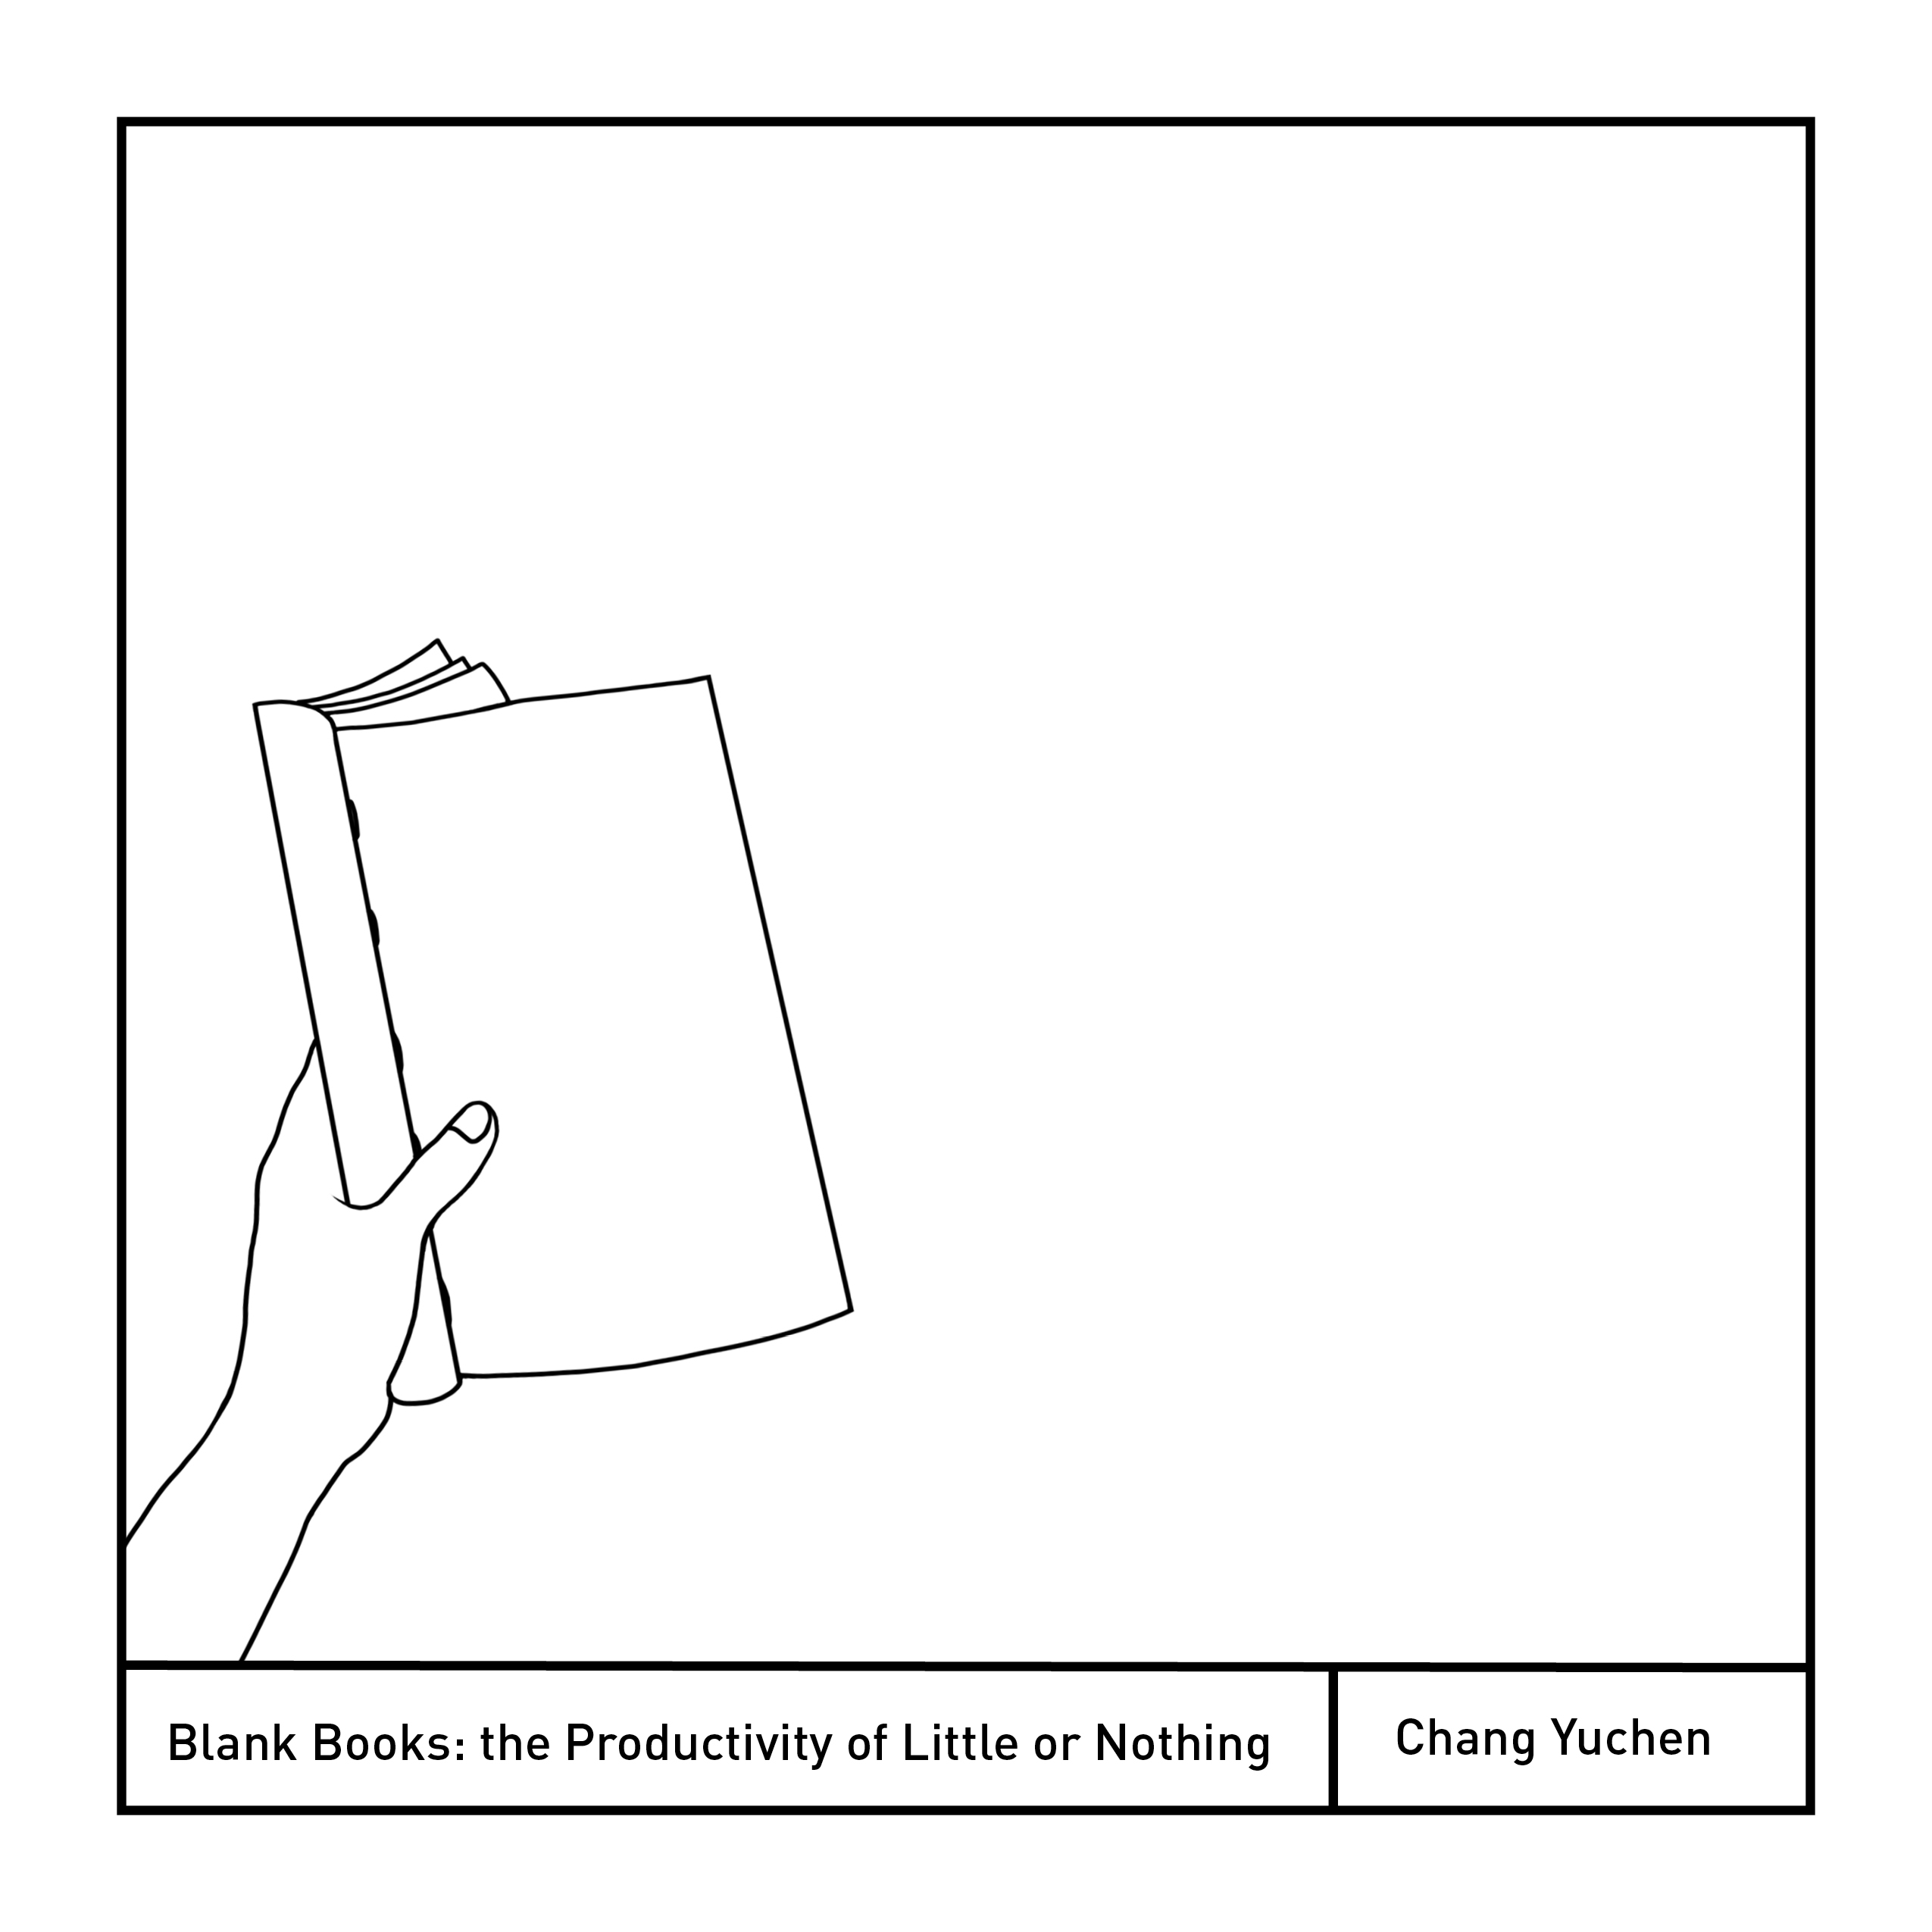 Digitally drawn image of hand holding a blank book with a white background.